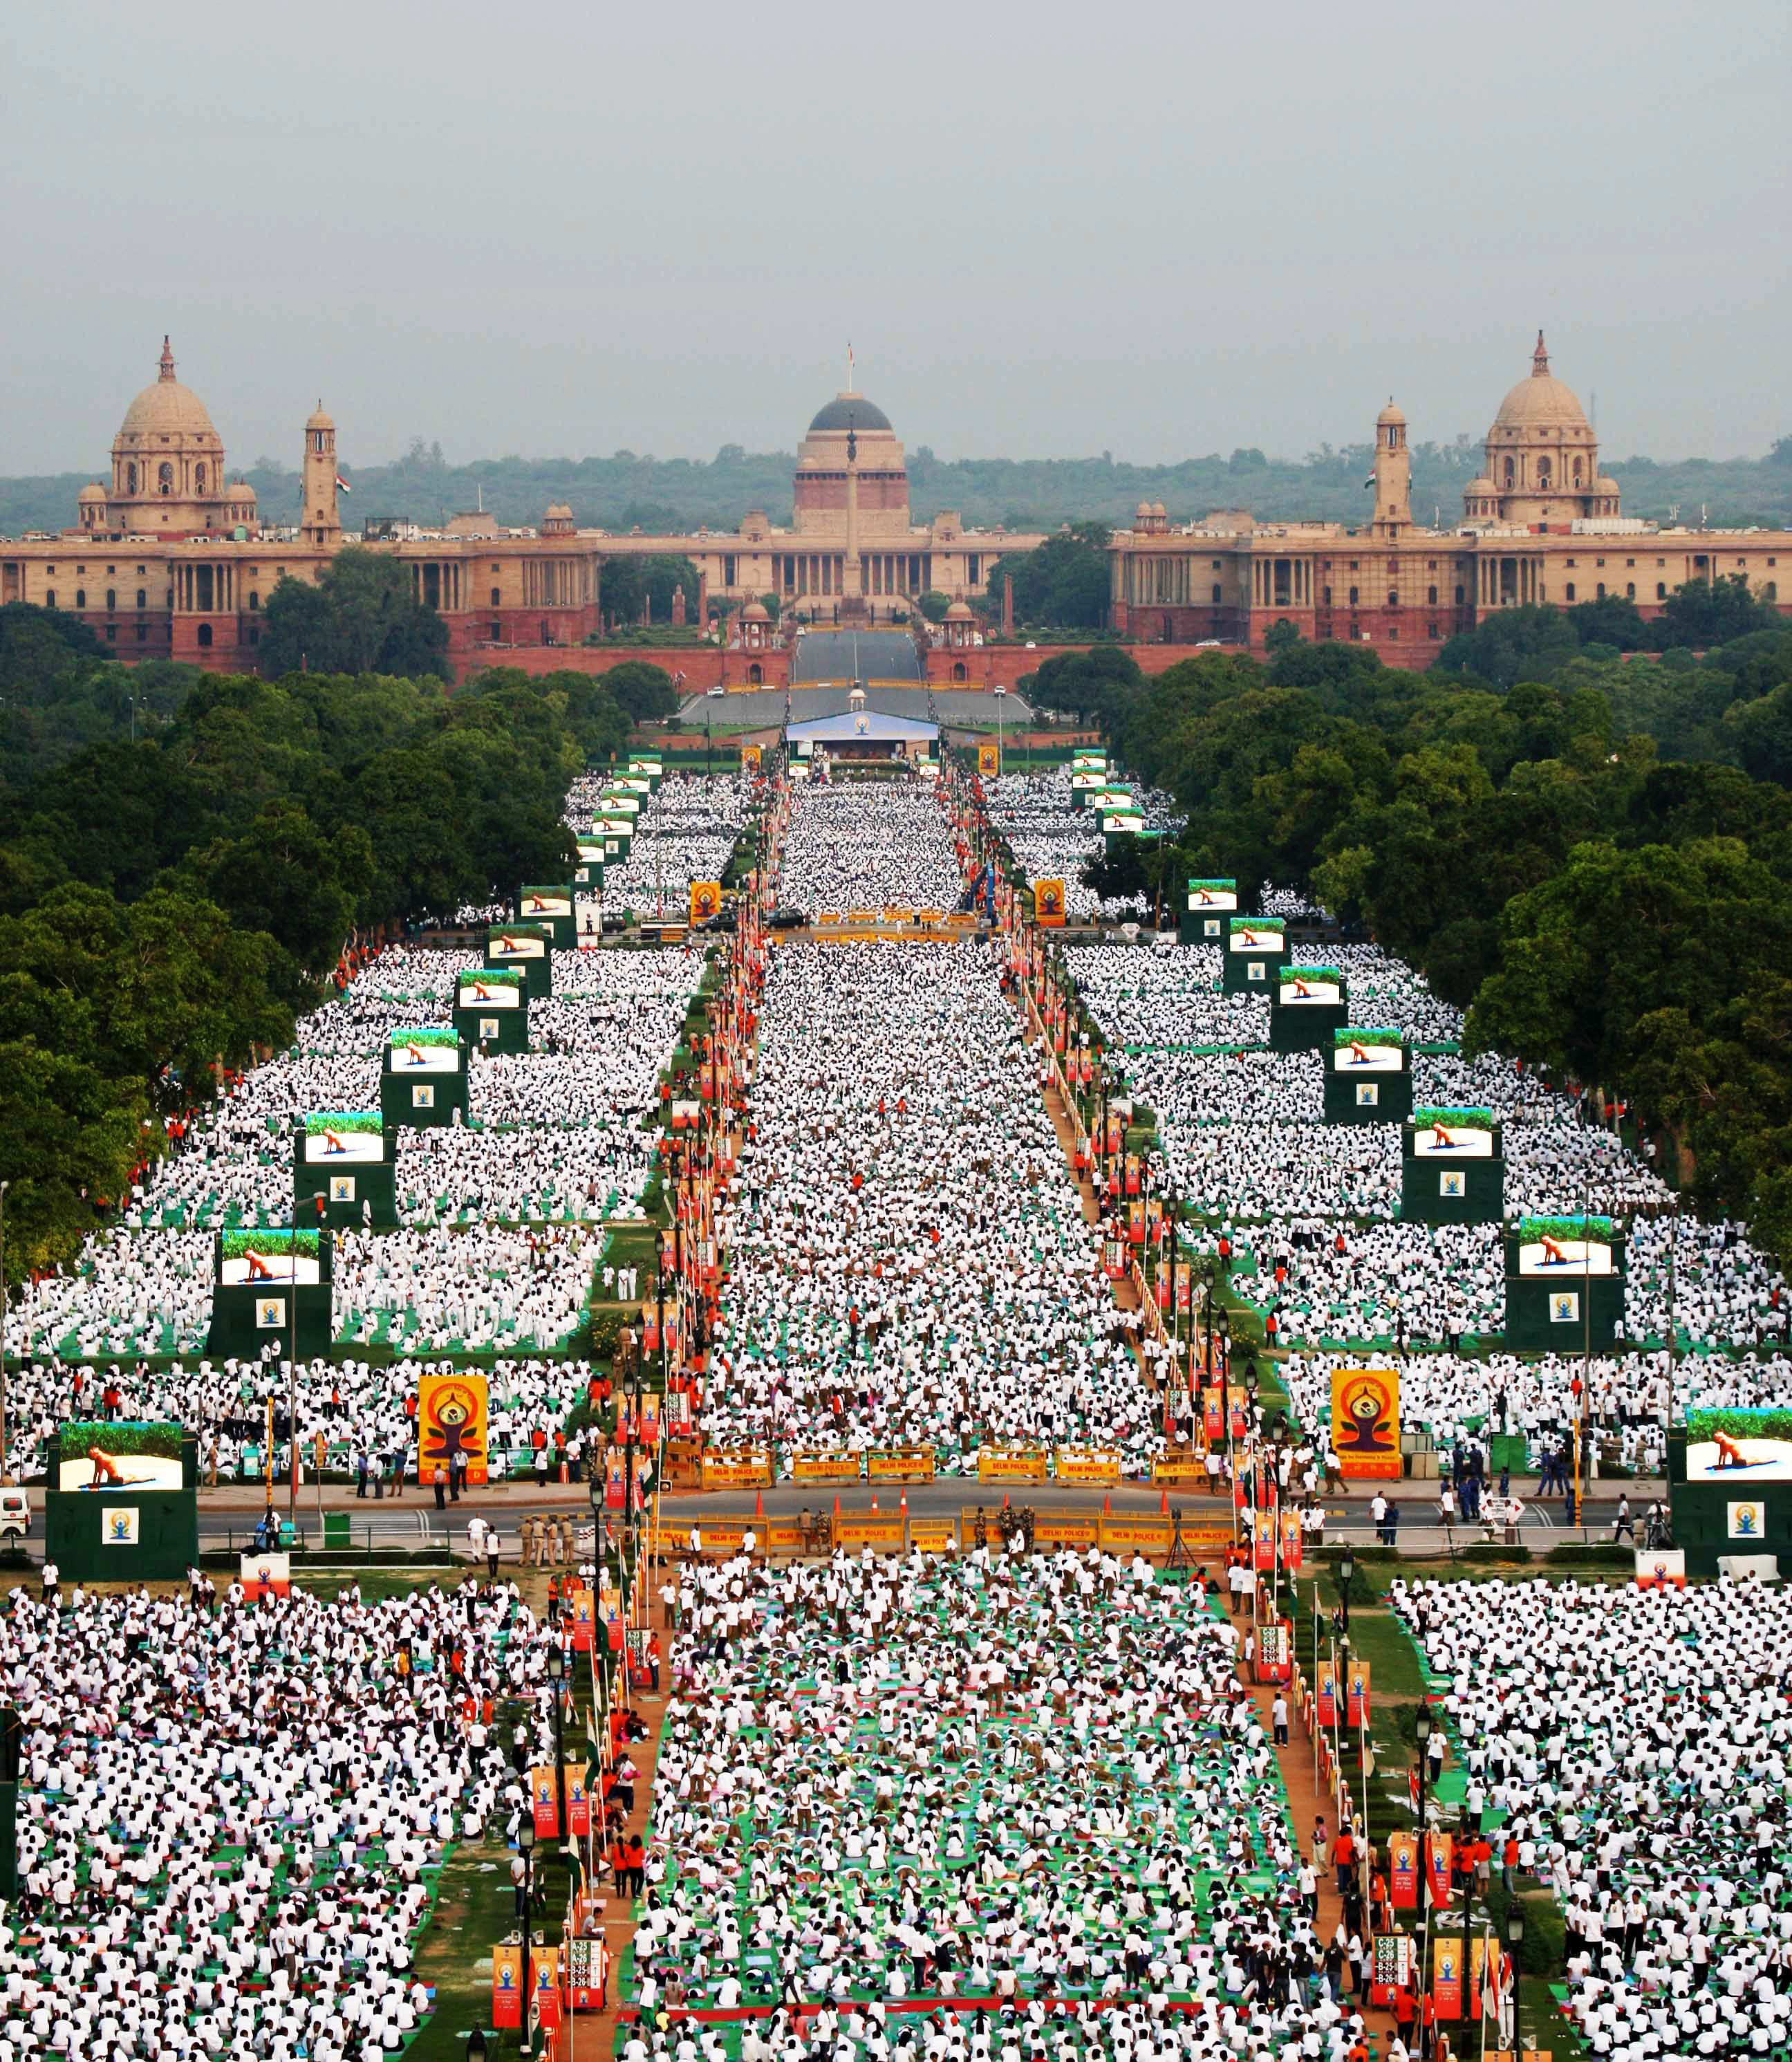 Thousands of participants perform yoga on Rajpath, a boulevard in New Delhi, on June 21, 2015.